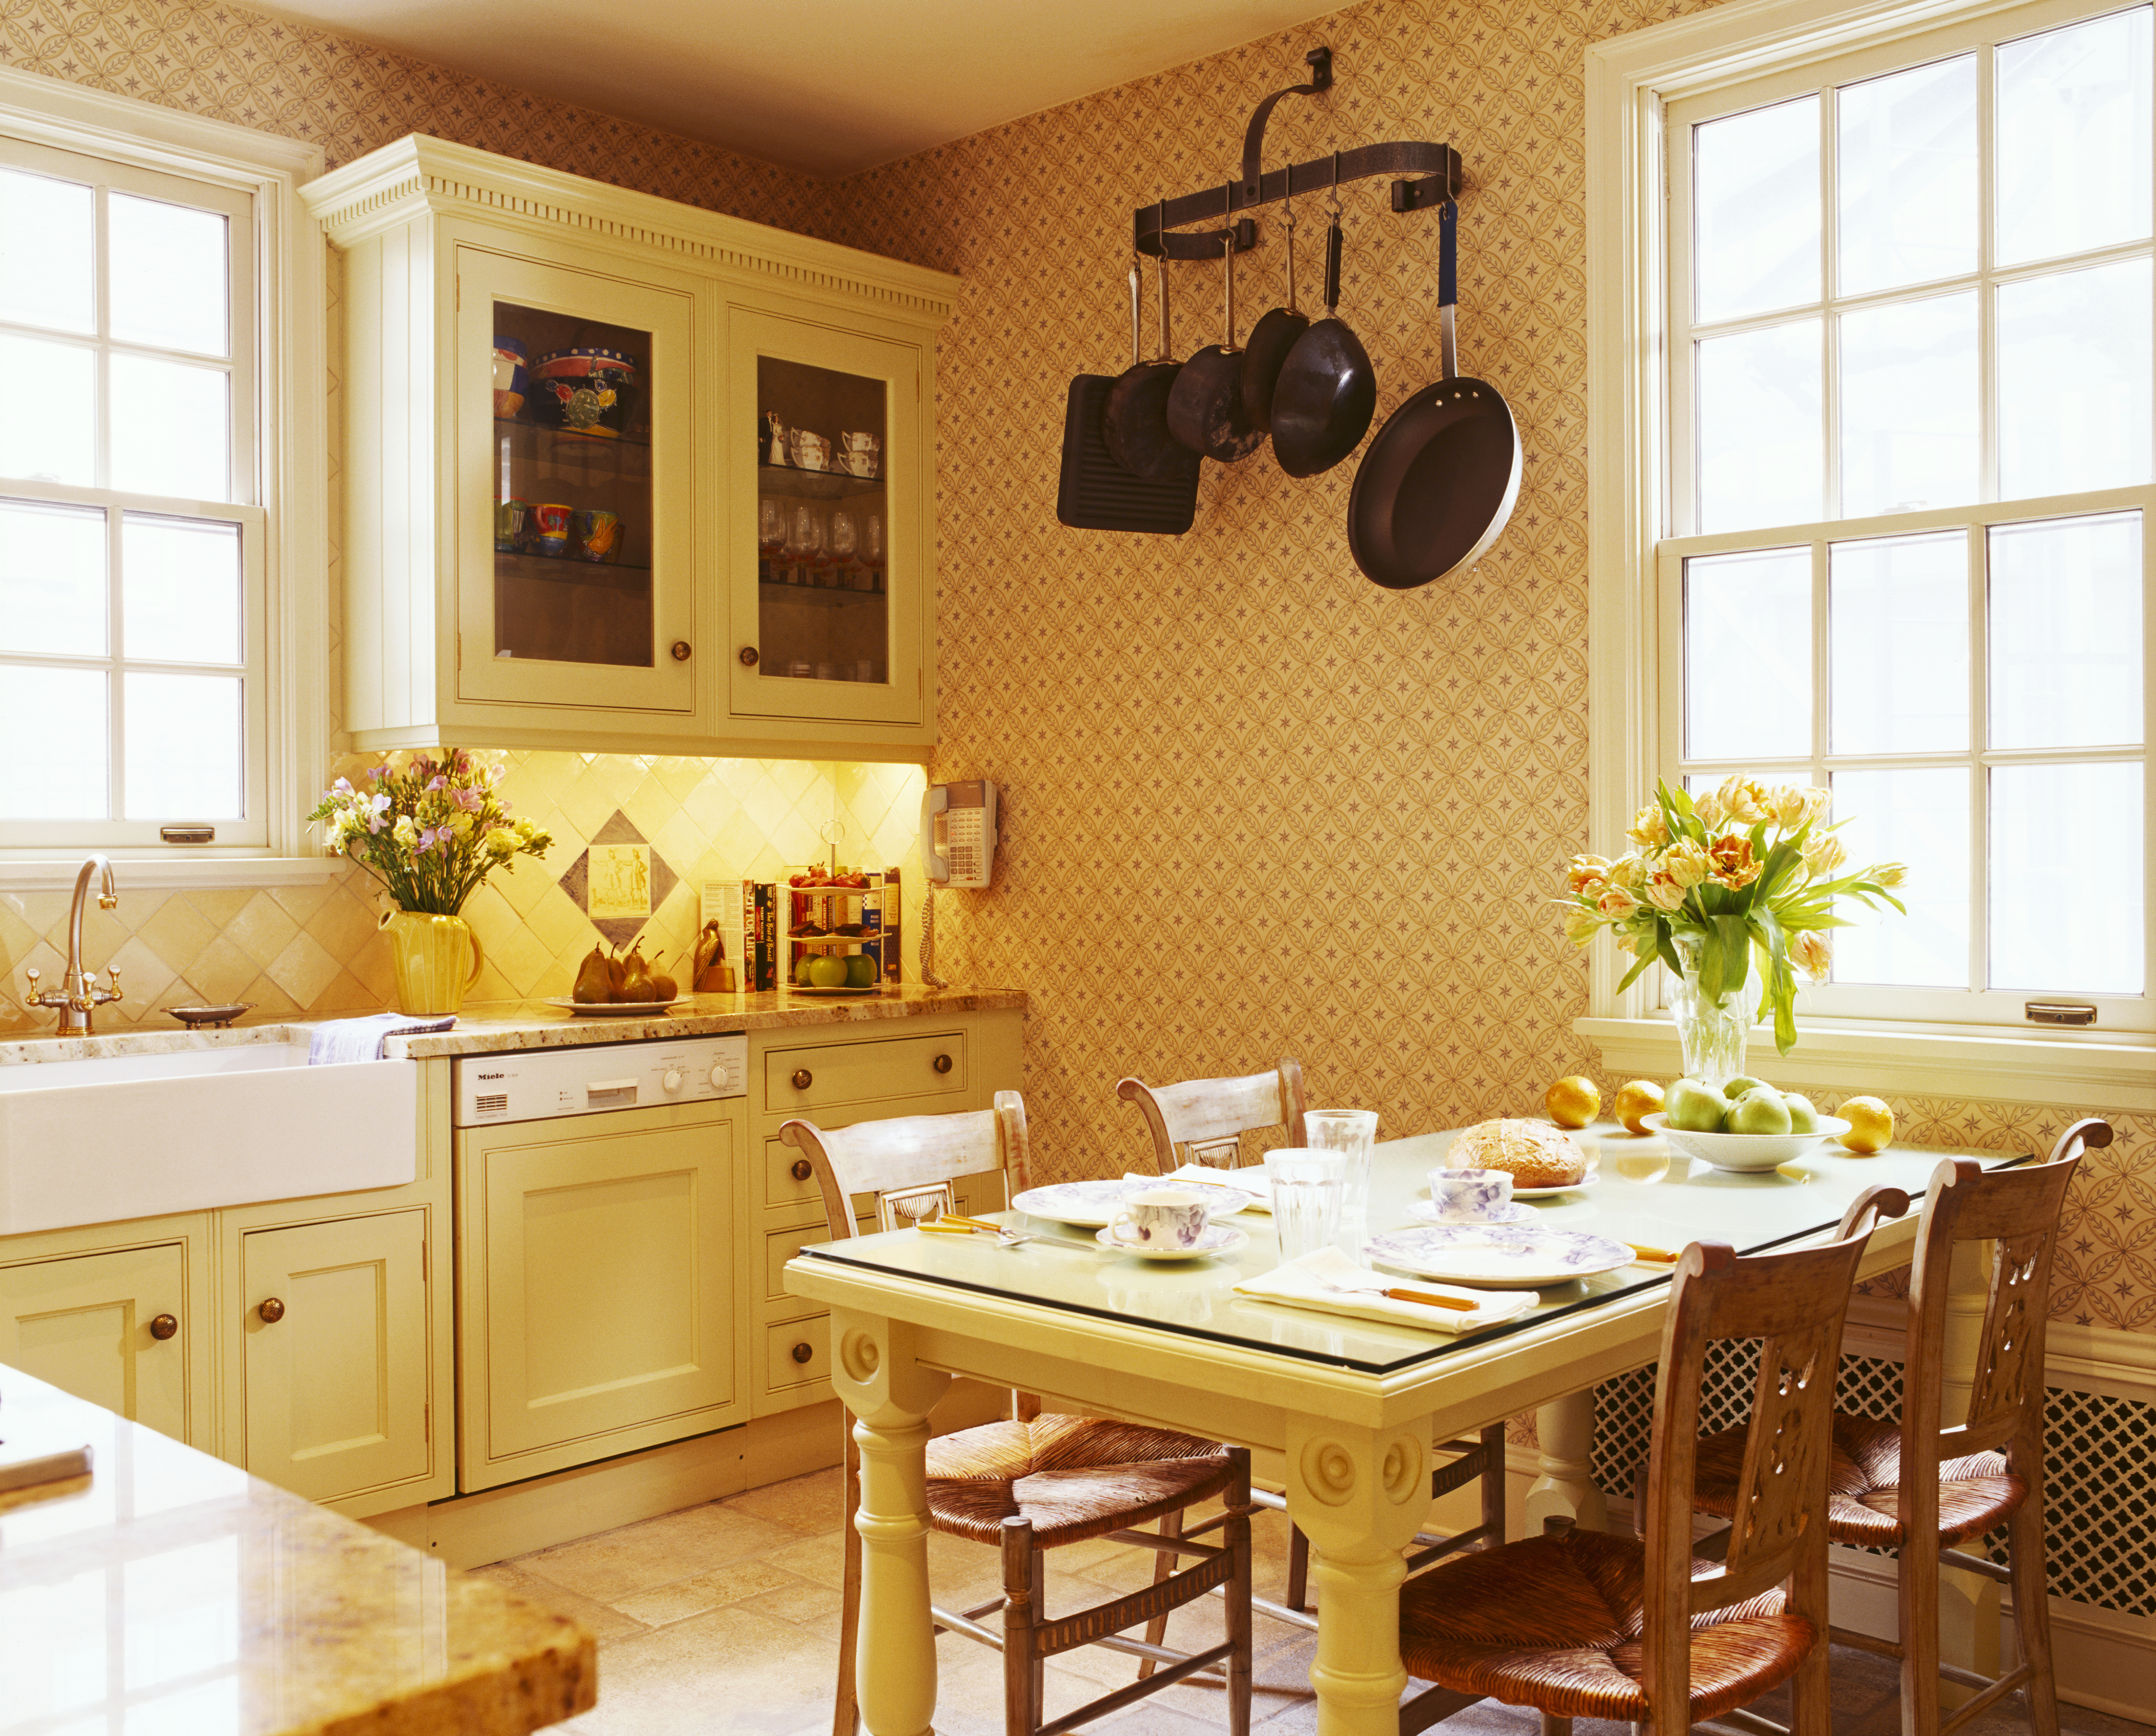 Yellow kitchen with yellow cabinets and table